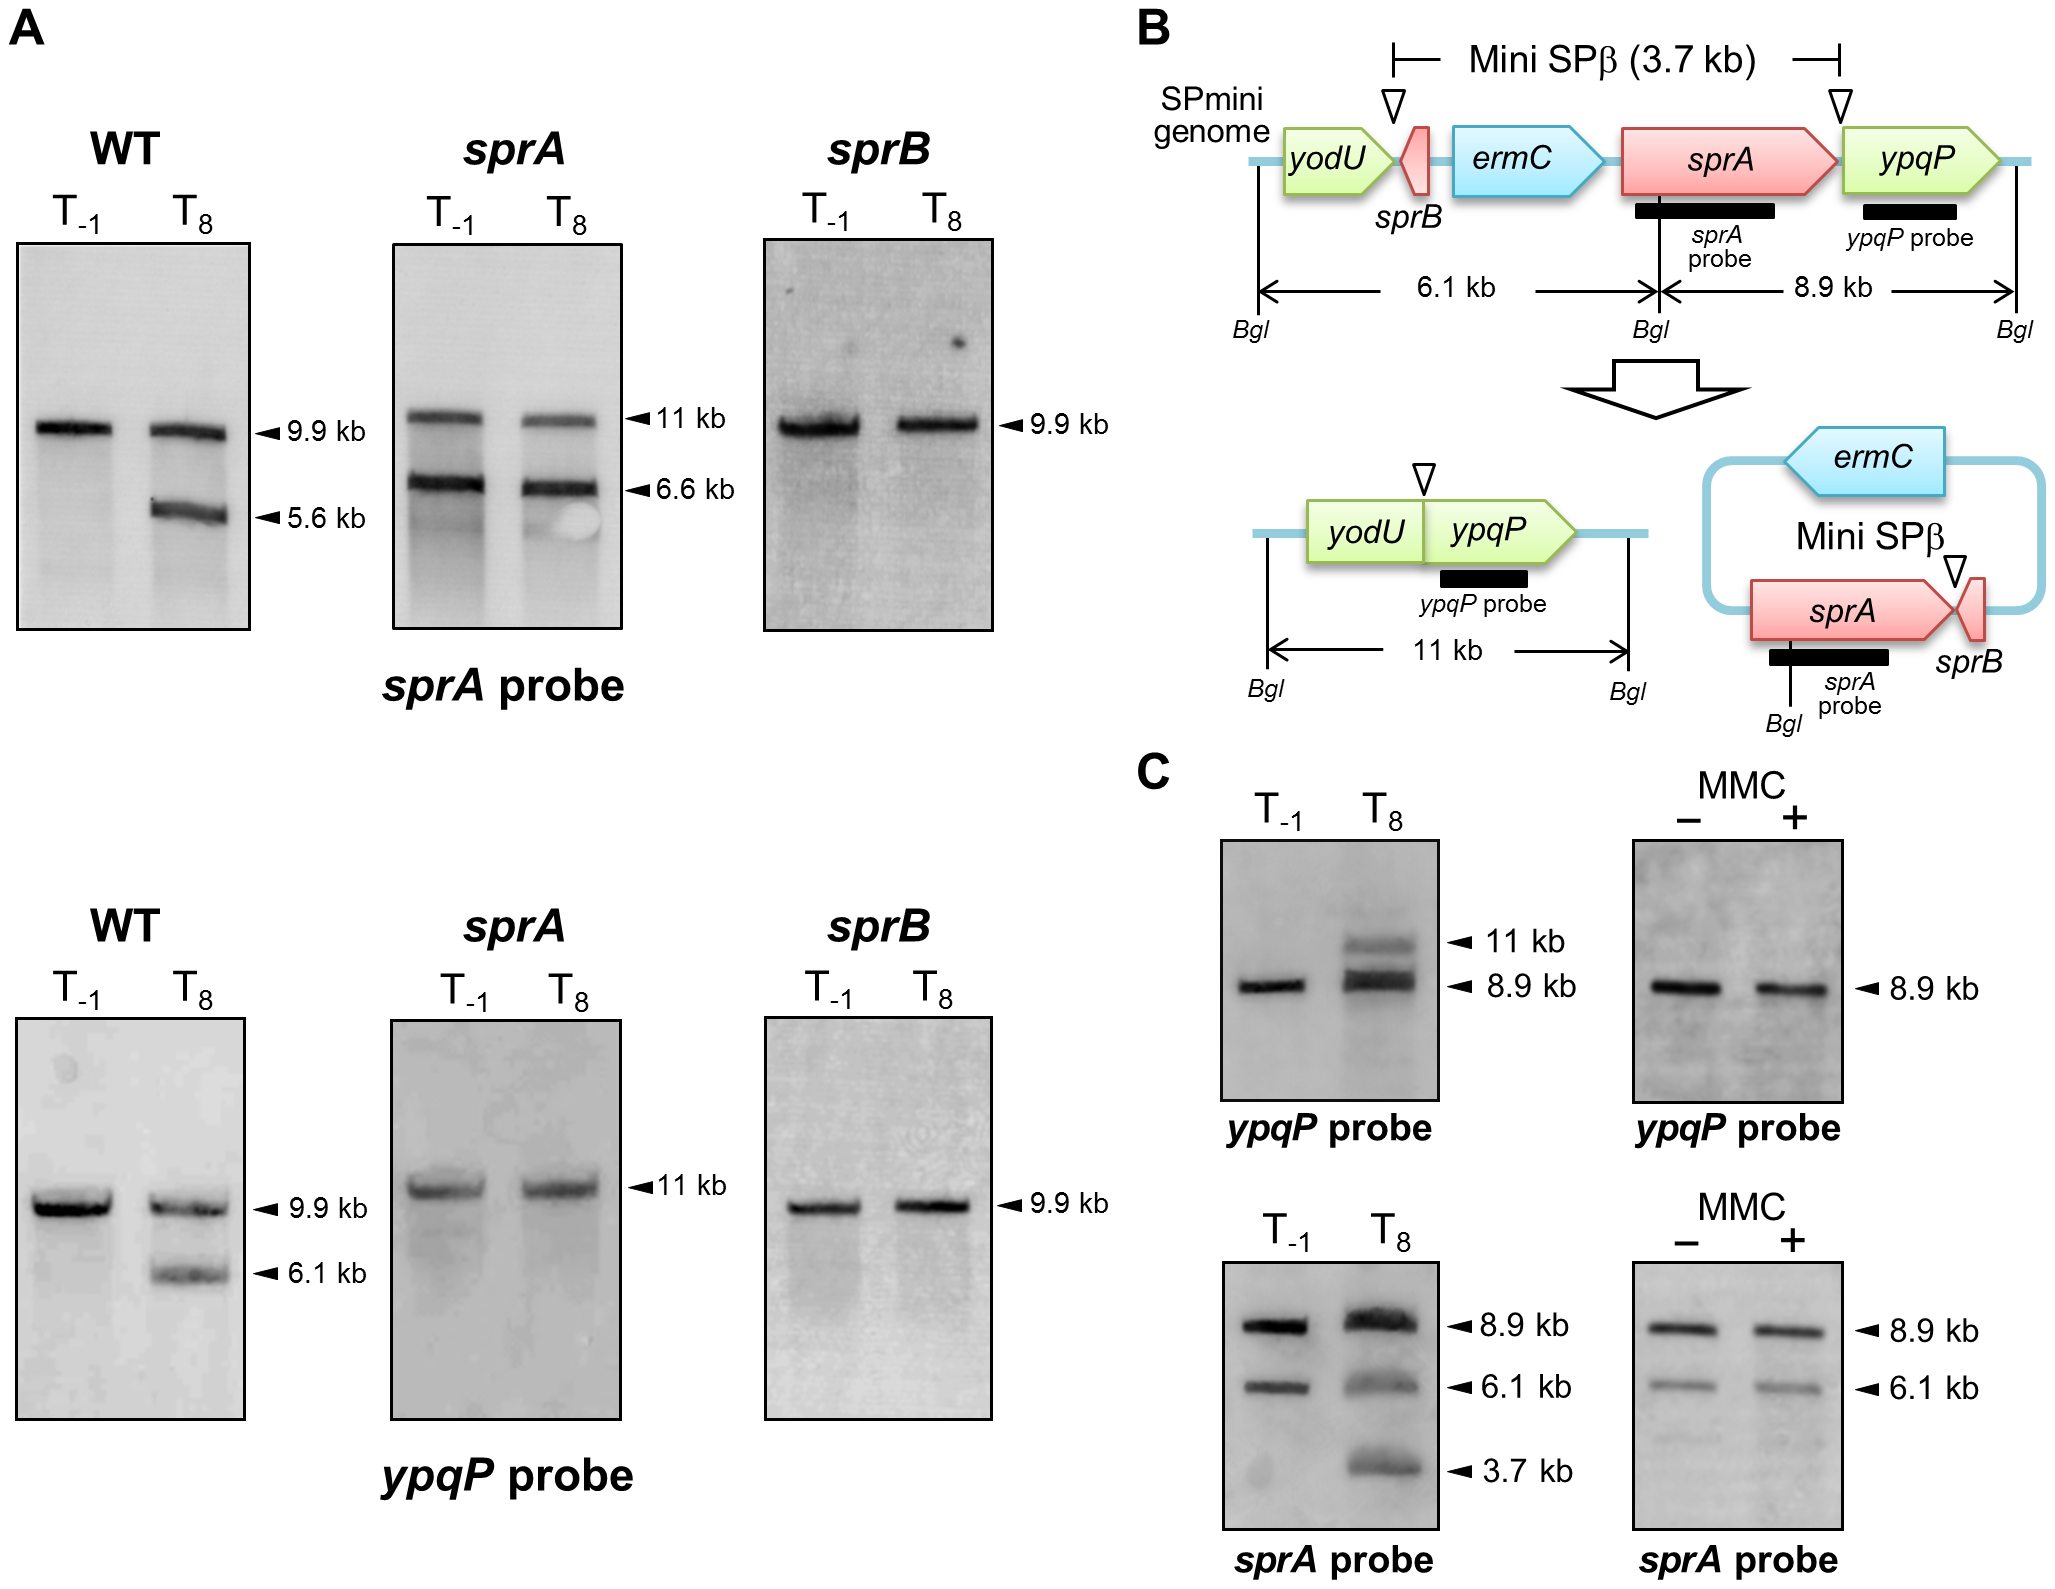 SPβ genes required for prophage excision.